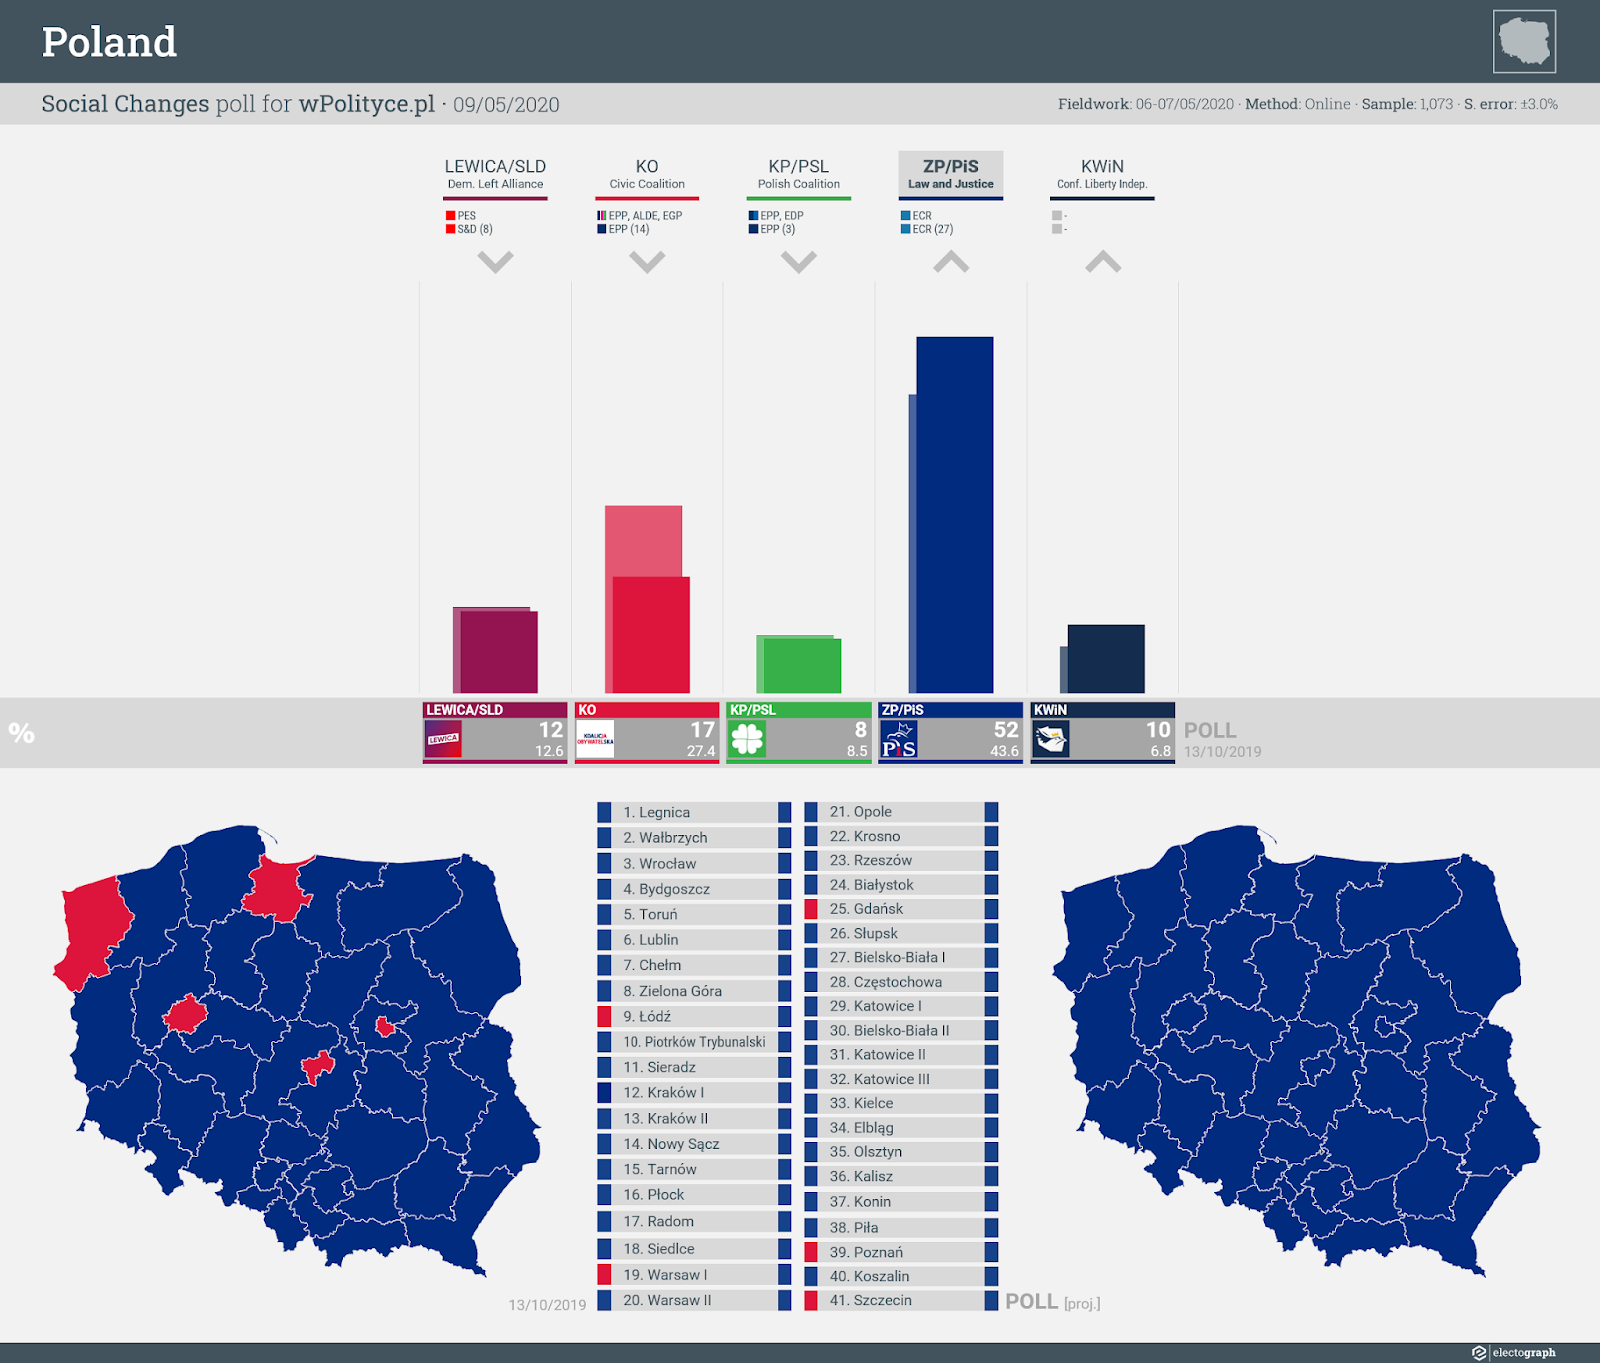 POLAND: Social Changes poll chart for wPolityce.pl, 9 May 2020